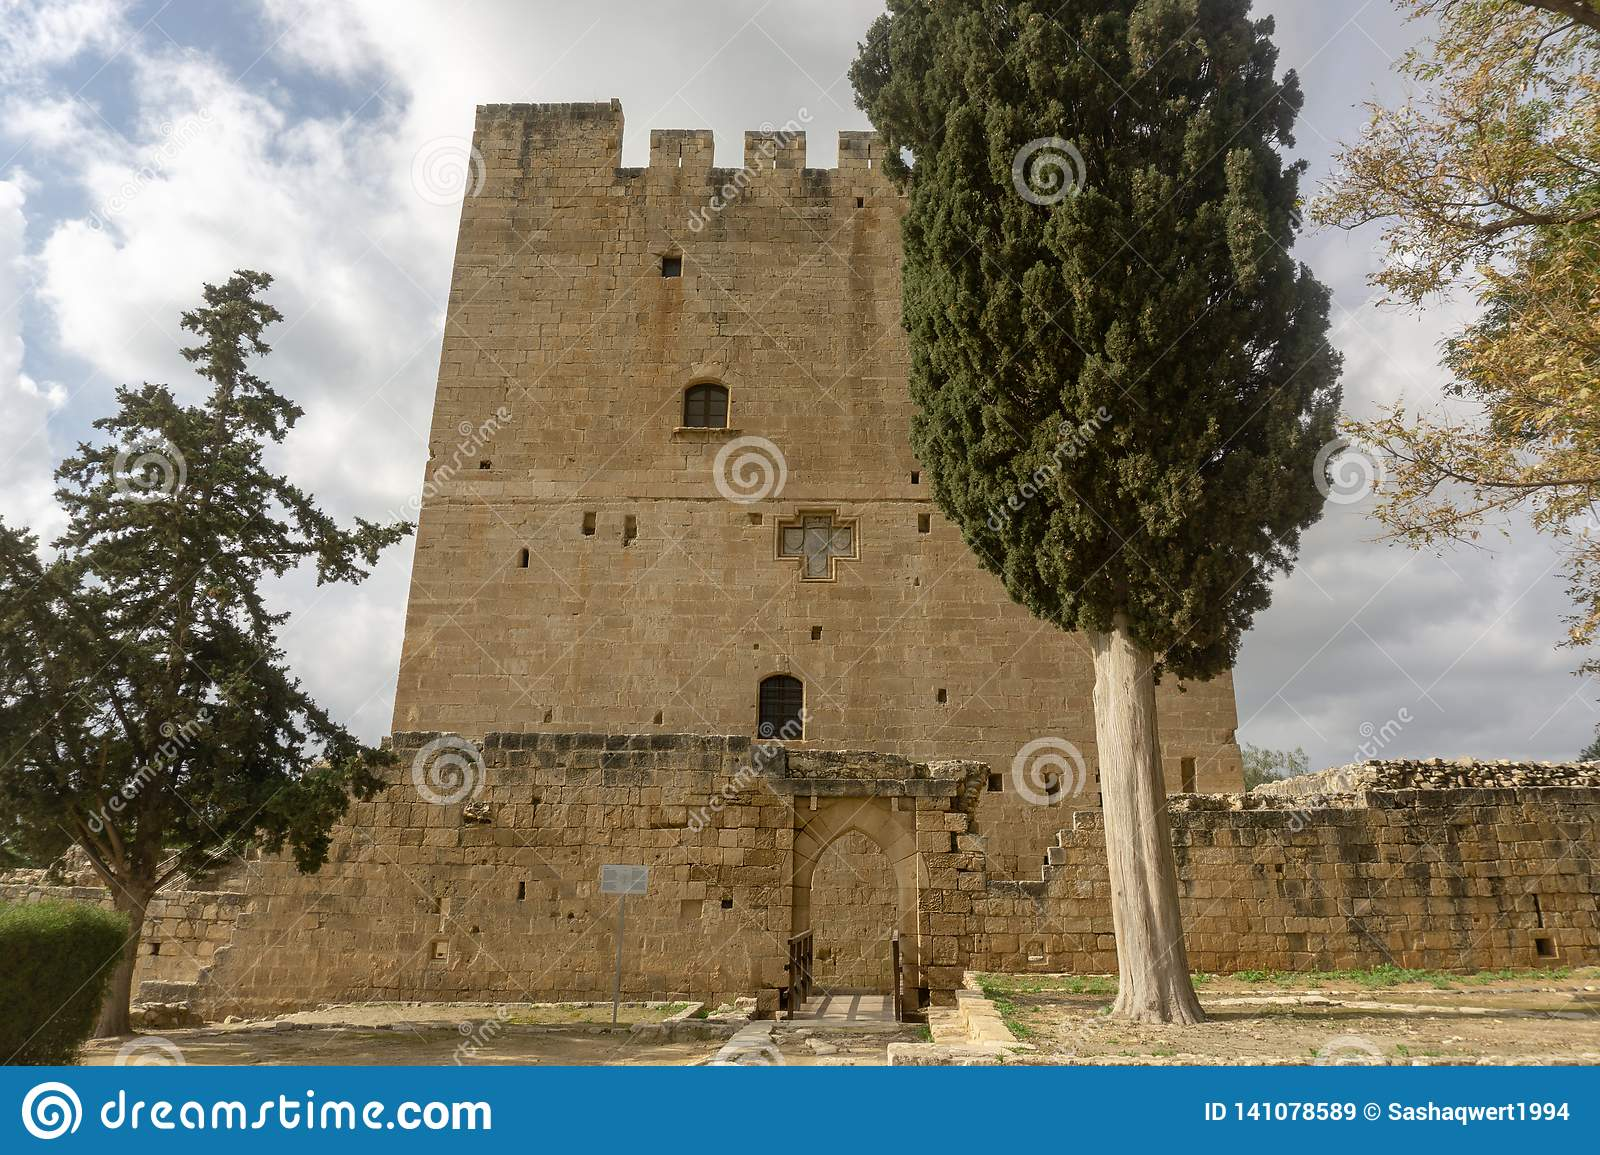 Kolossi, Limassol/Cyprus - January 2019: The medieval castle of Kolossi near Limassol in Cyprus.